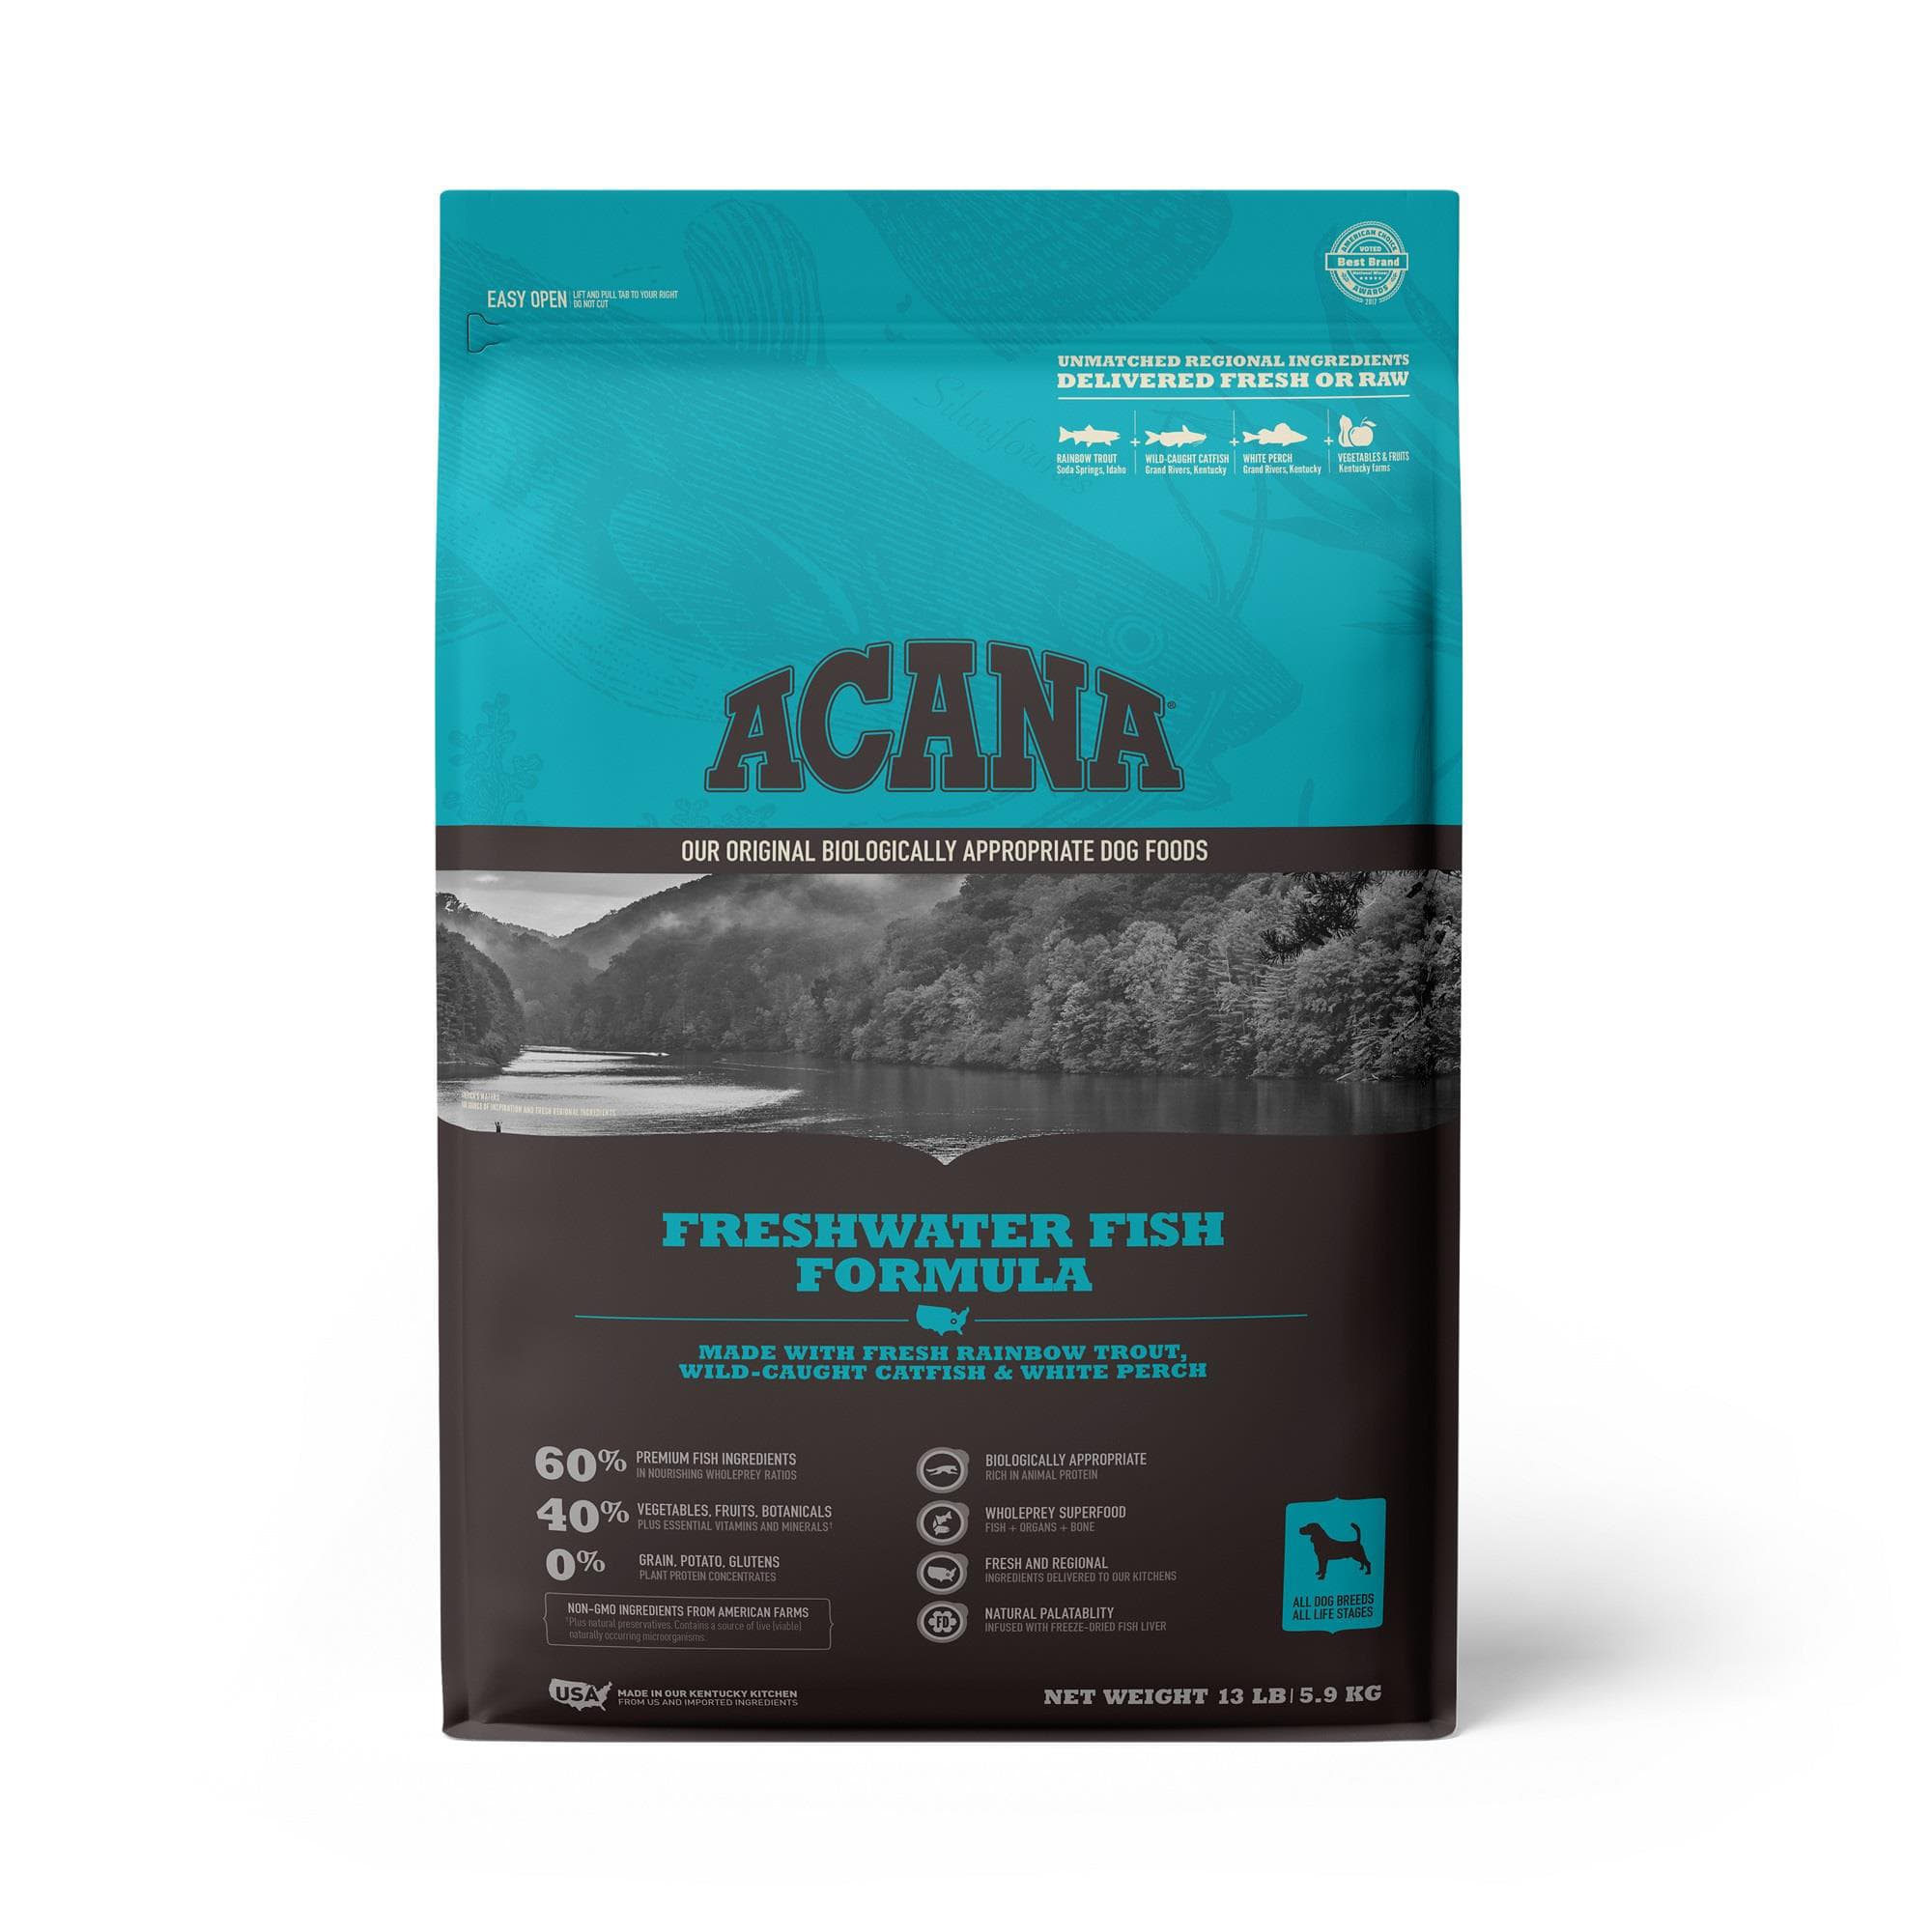 ACANA Grain-Free Freshwater Fish Whole Trout Catfish and Perch Dry Dog Food, 13 lbs.